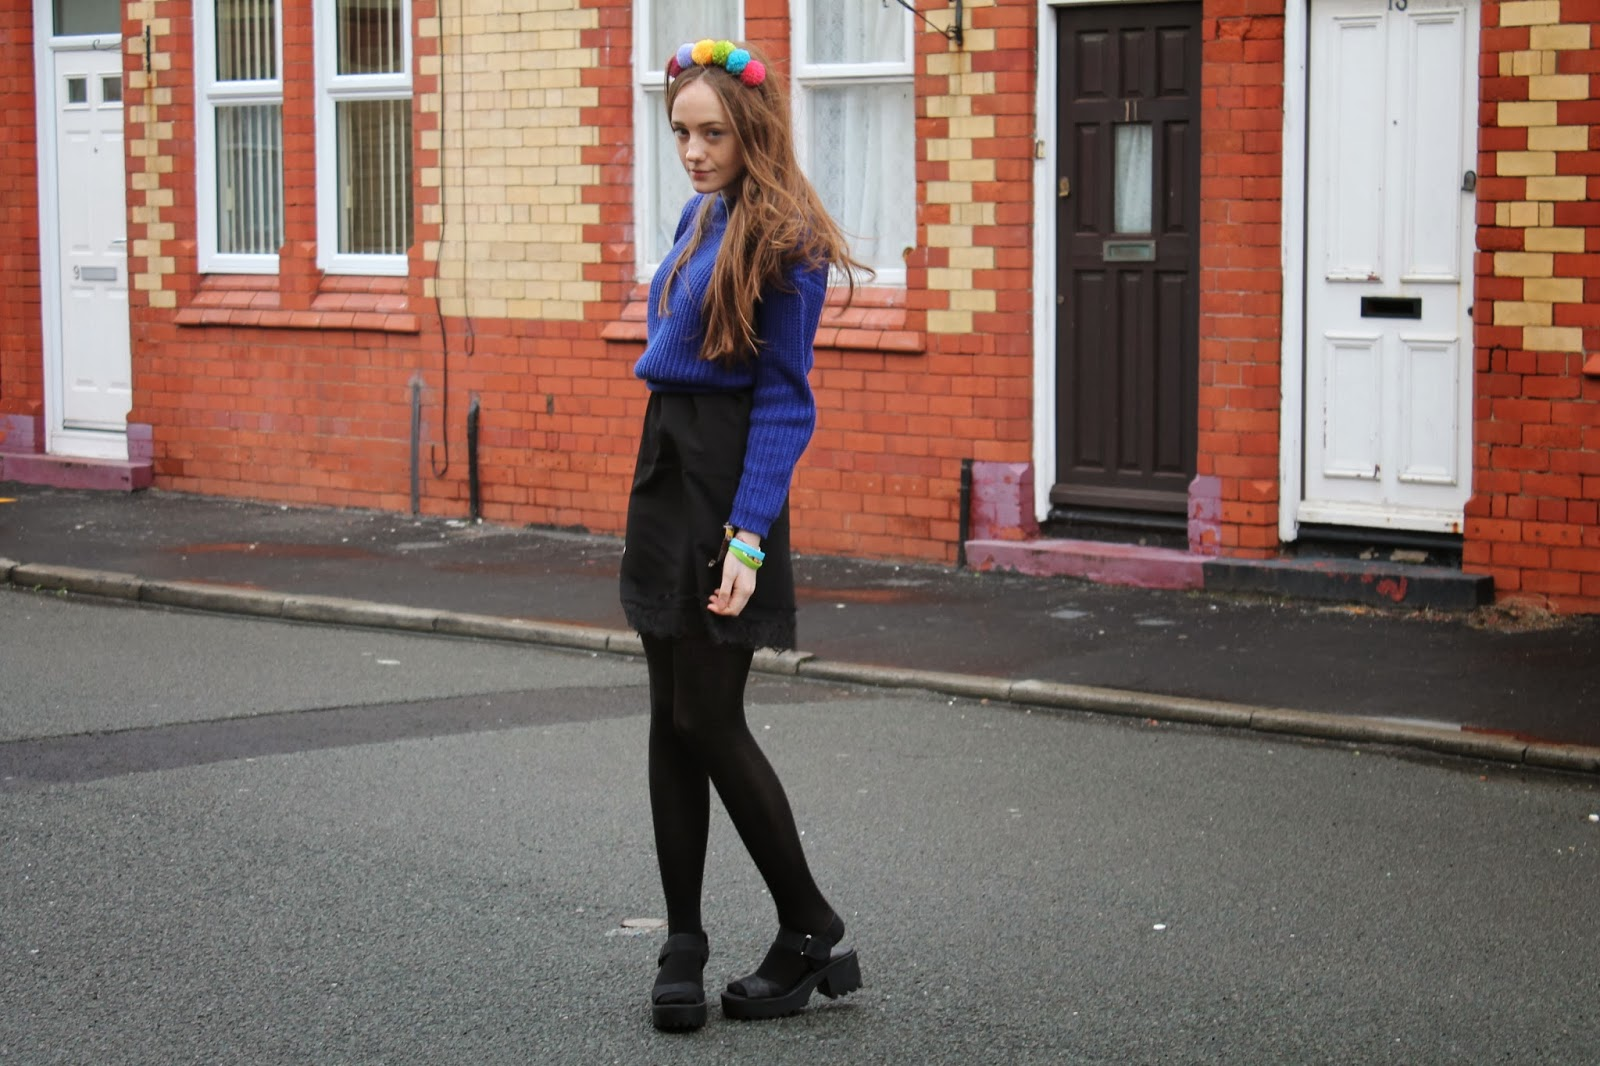 pom pom hairband, asos pompom headband, blue primark rib knit jumper, black asos lace trim slip dress, chunky cleated sole black sandals, jeffrey campbell dupes copies, new look shoes